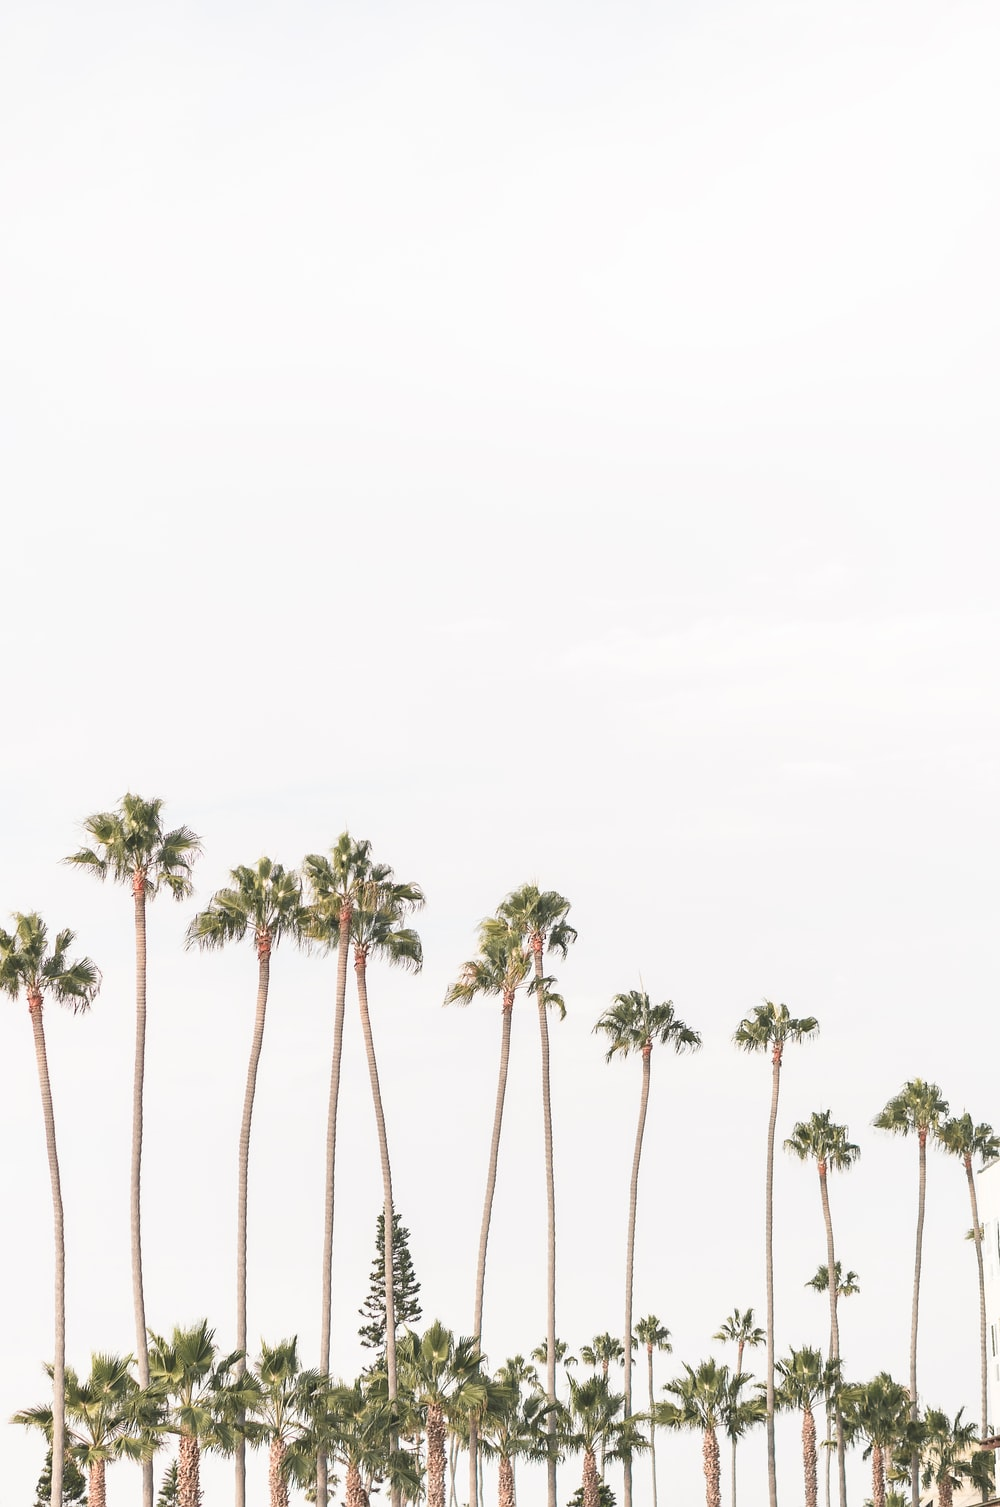 green palm trees under white sky during daytime